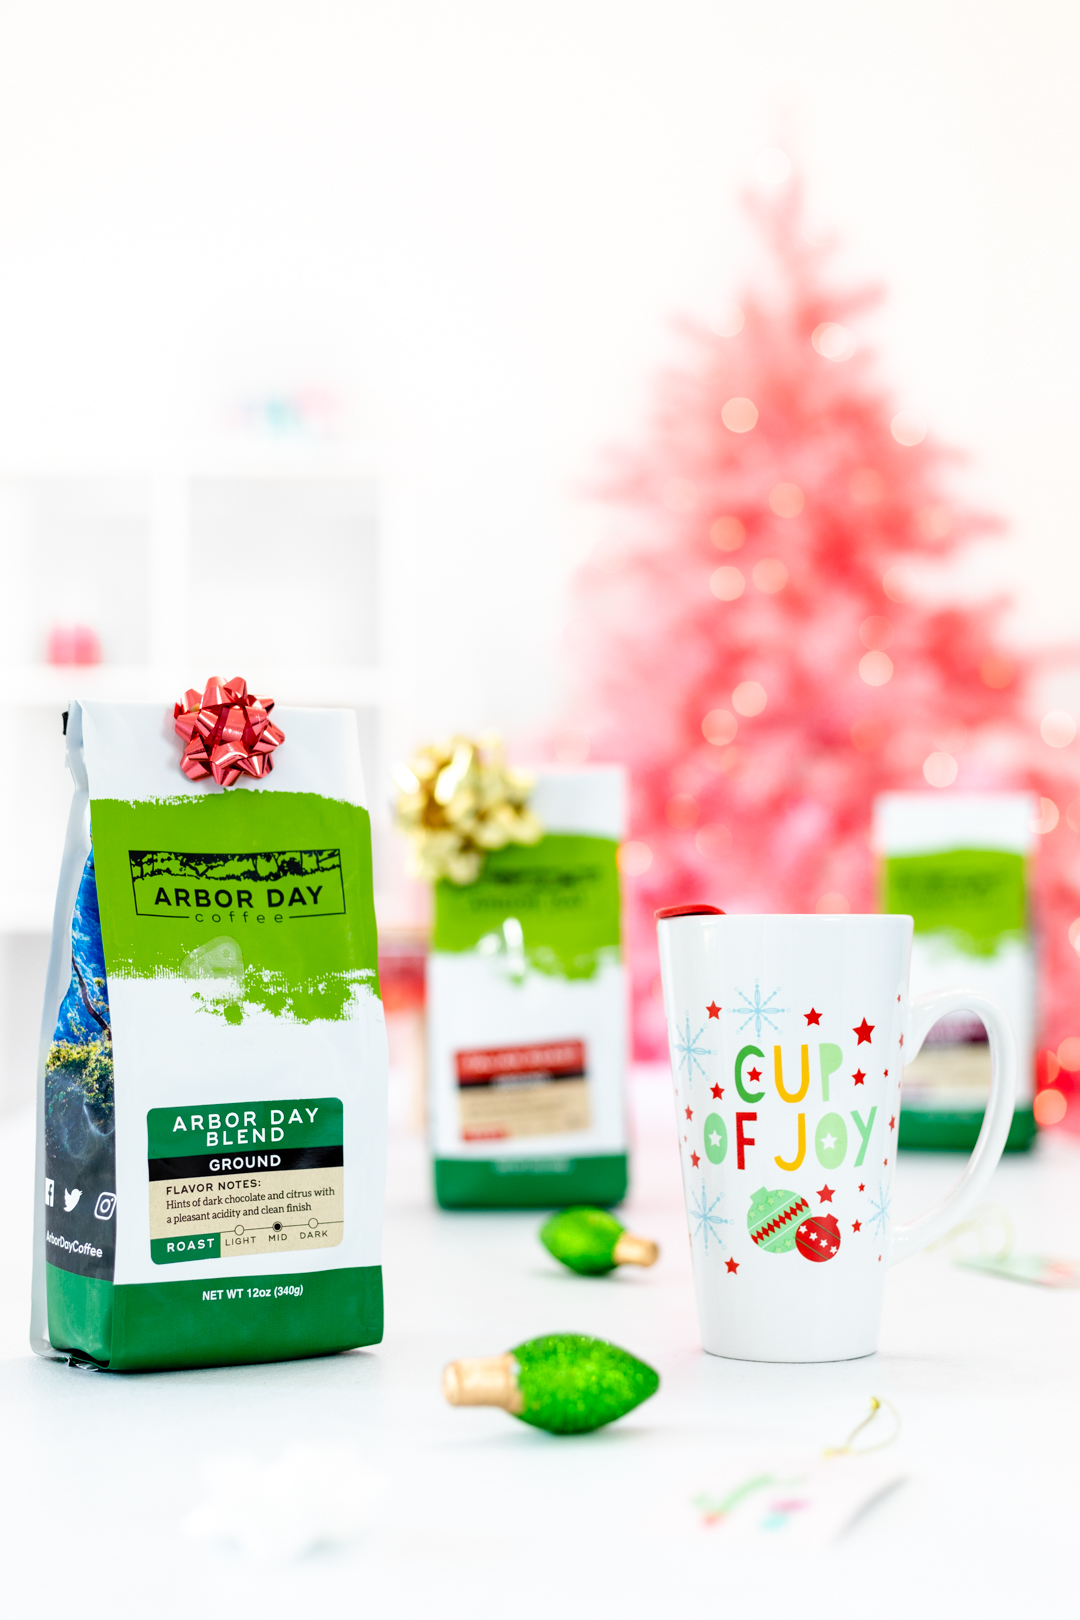 Coffee gifts under the Christmas Tree